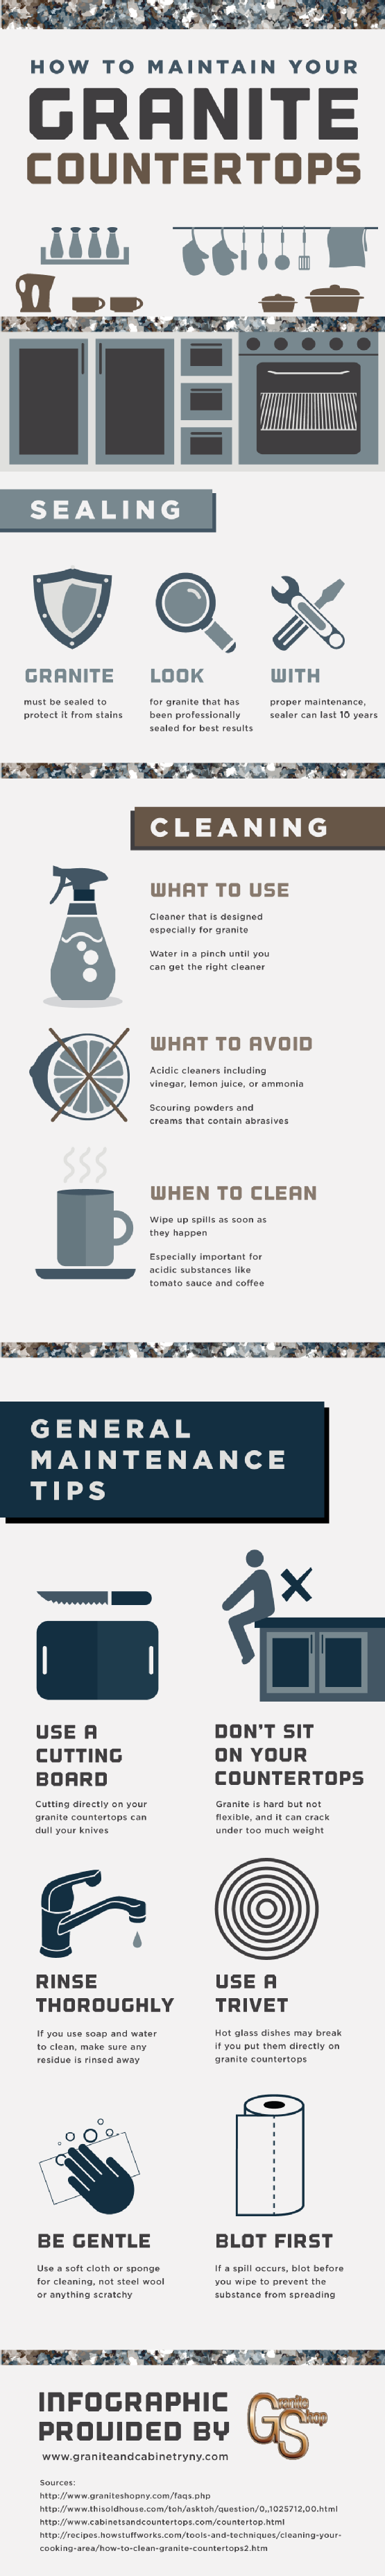 Infographic: How To Maintain Your Granite Countertops